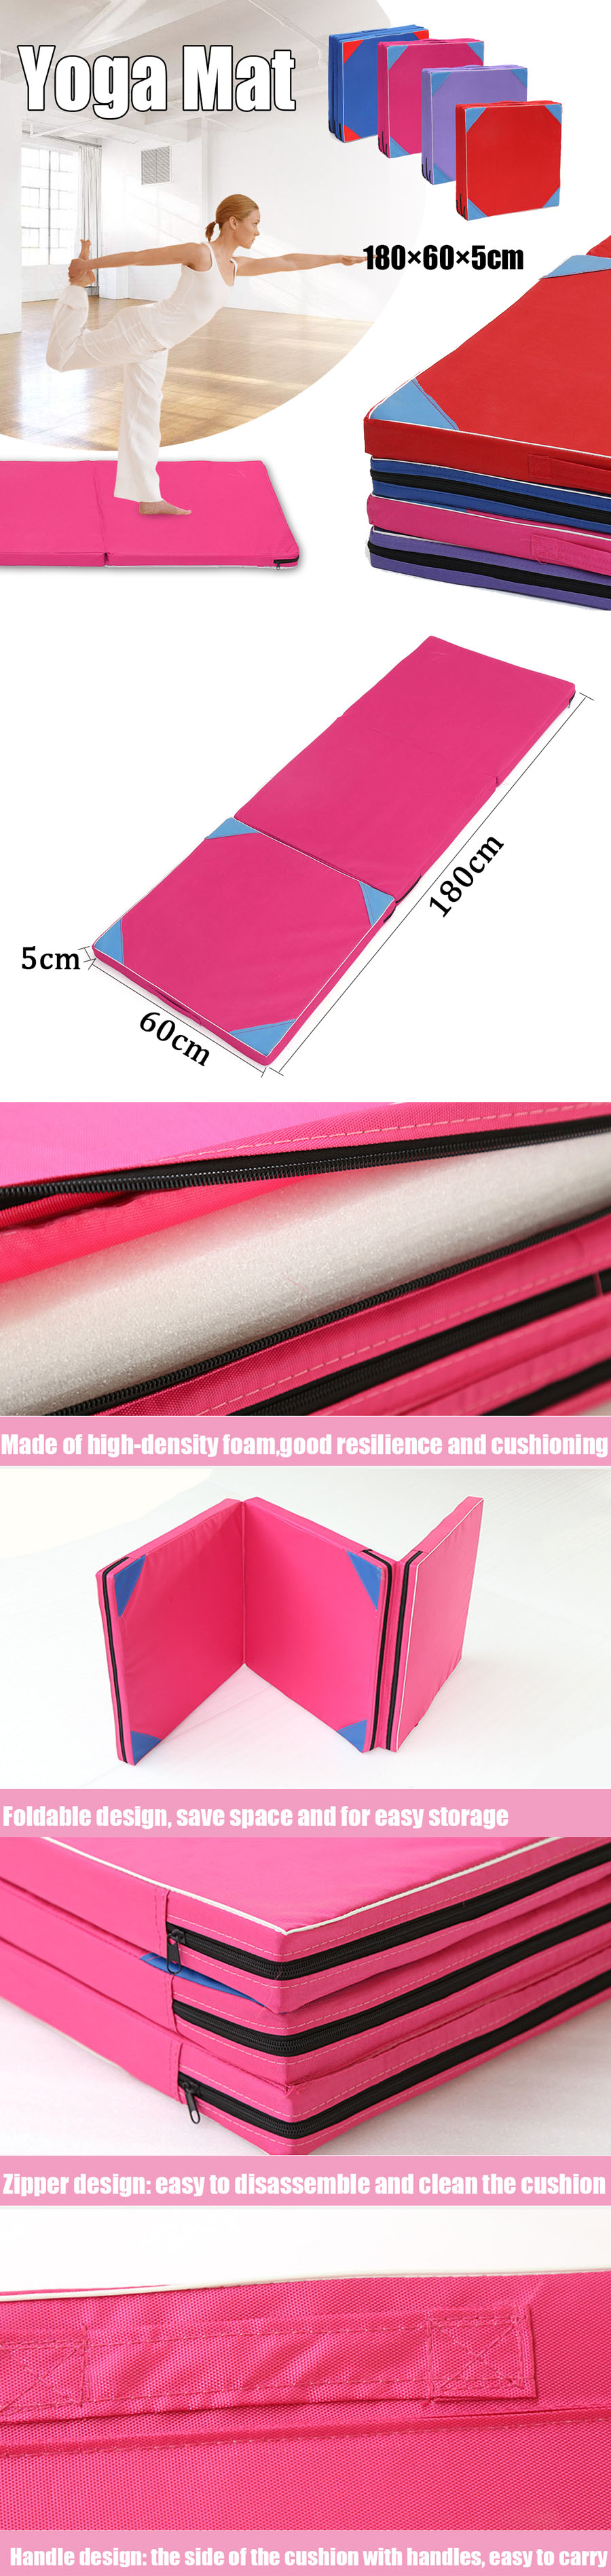 70.86x23.62x1.96inch 3 Folding Gymnastics Mat Fitness Exercise Gym Airtrack Panel Tumbling Climbing Pilates Pad Air Track